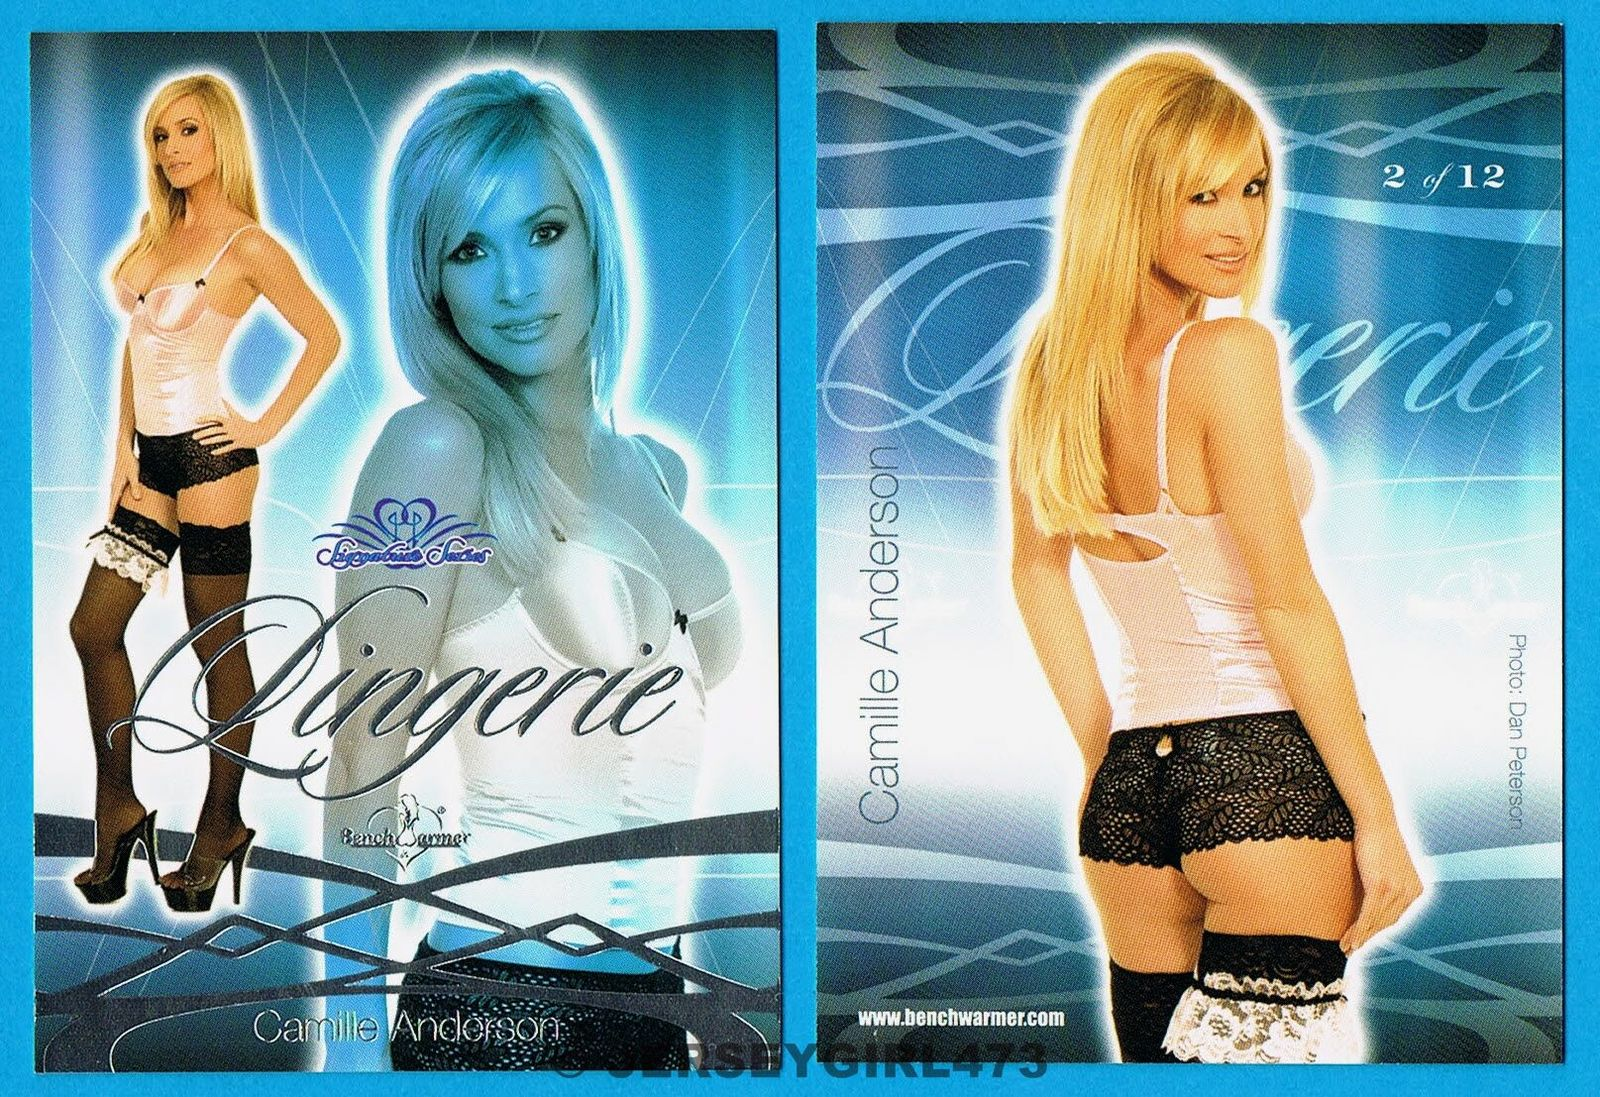 Camille Anderson 2008 Bench Warmer Signature Series Lingerie Card #2